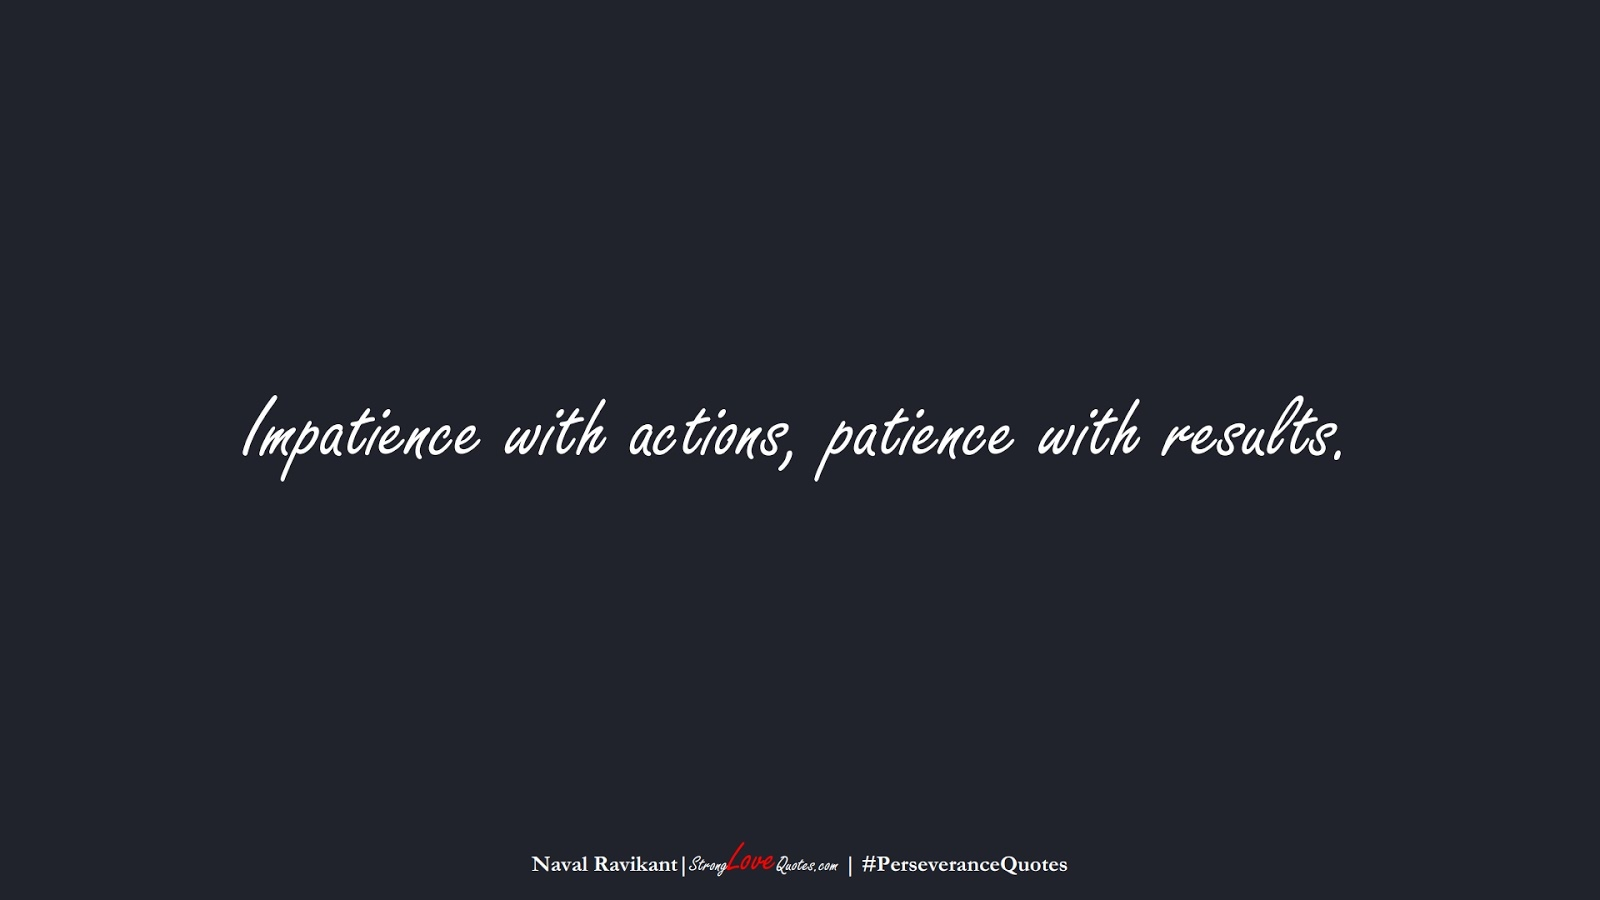 Impatience with actions, patience with results. (Naval Ravikant);  #PerseveranceQuotes